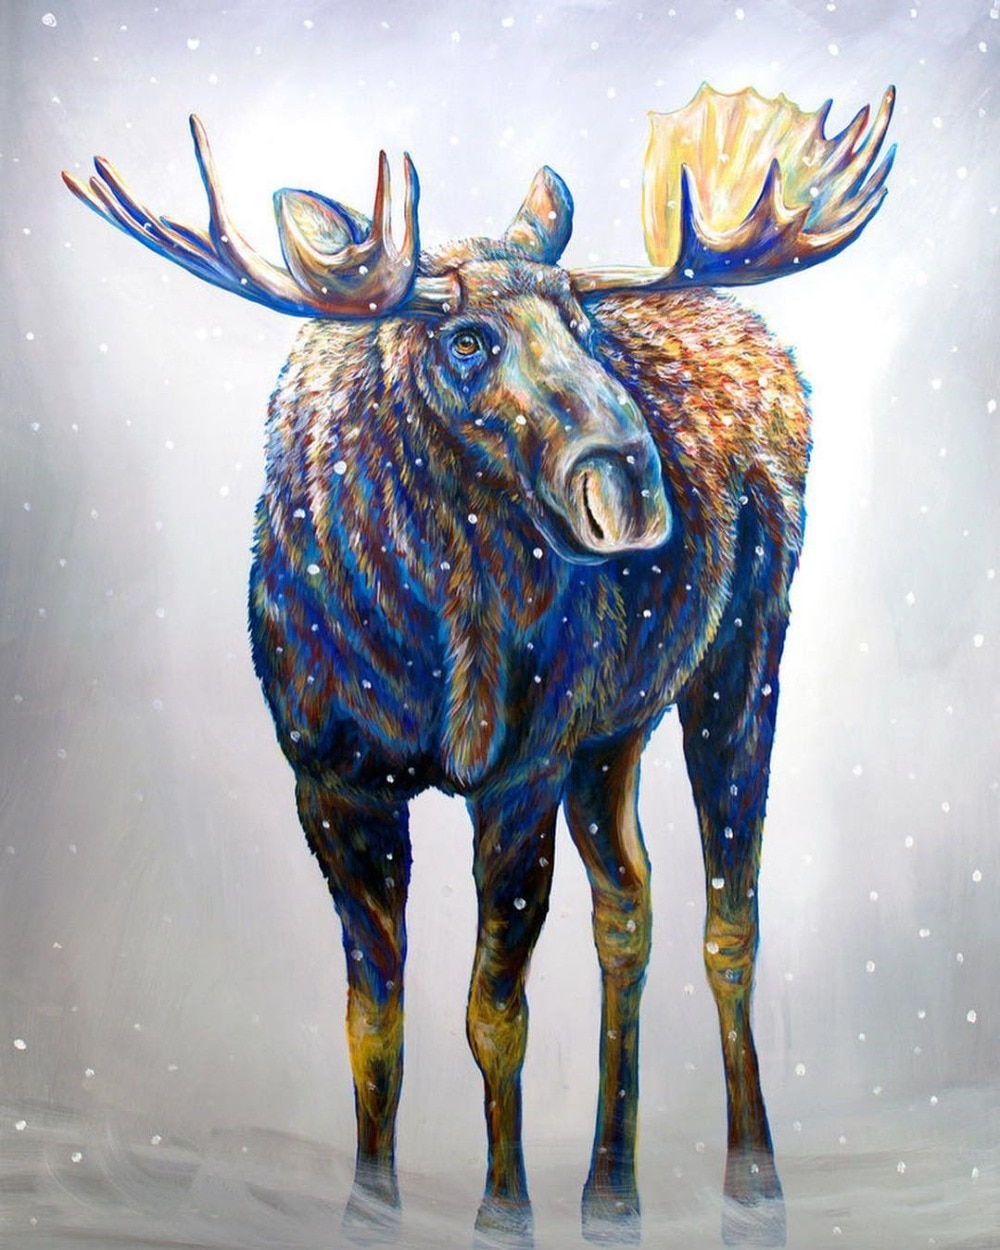 Animal Moose 5D DIY Diamond Painting Cross Stitch Christmas Full Mosaic Drill Handmade Embroidery Gift Home Room Decor Art